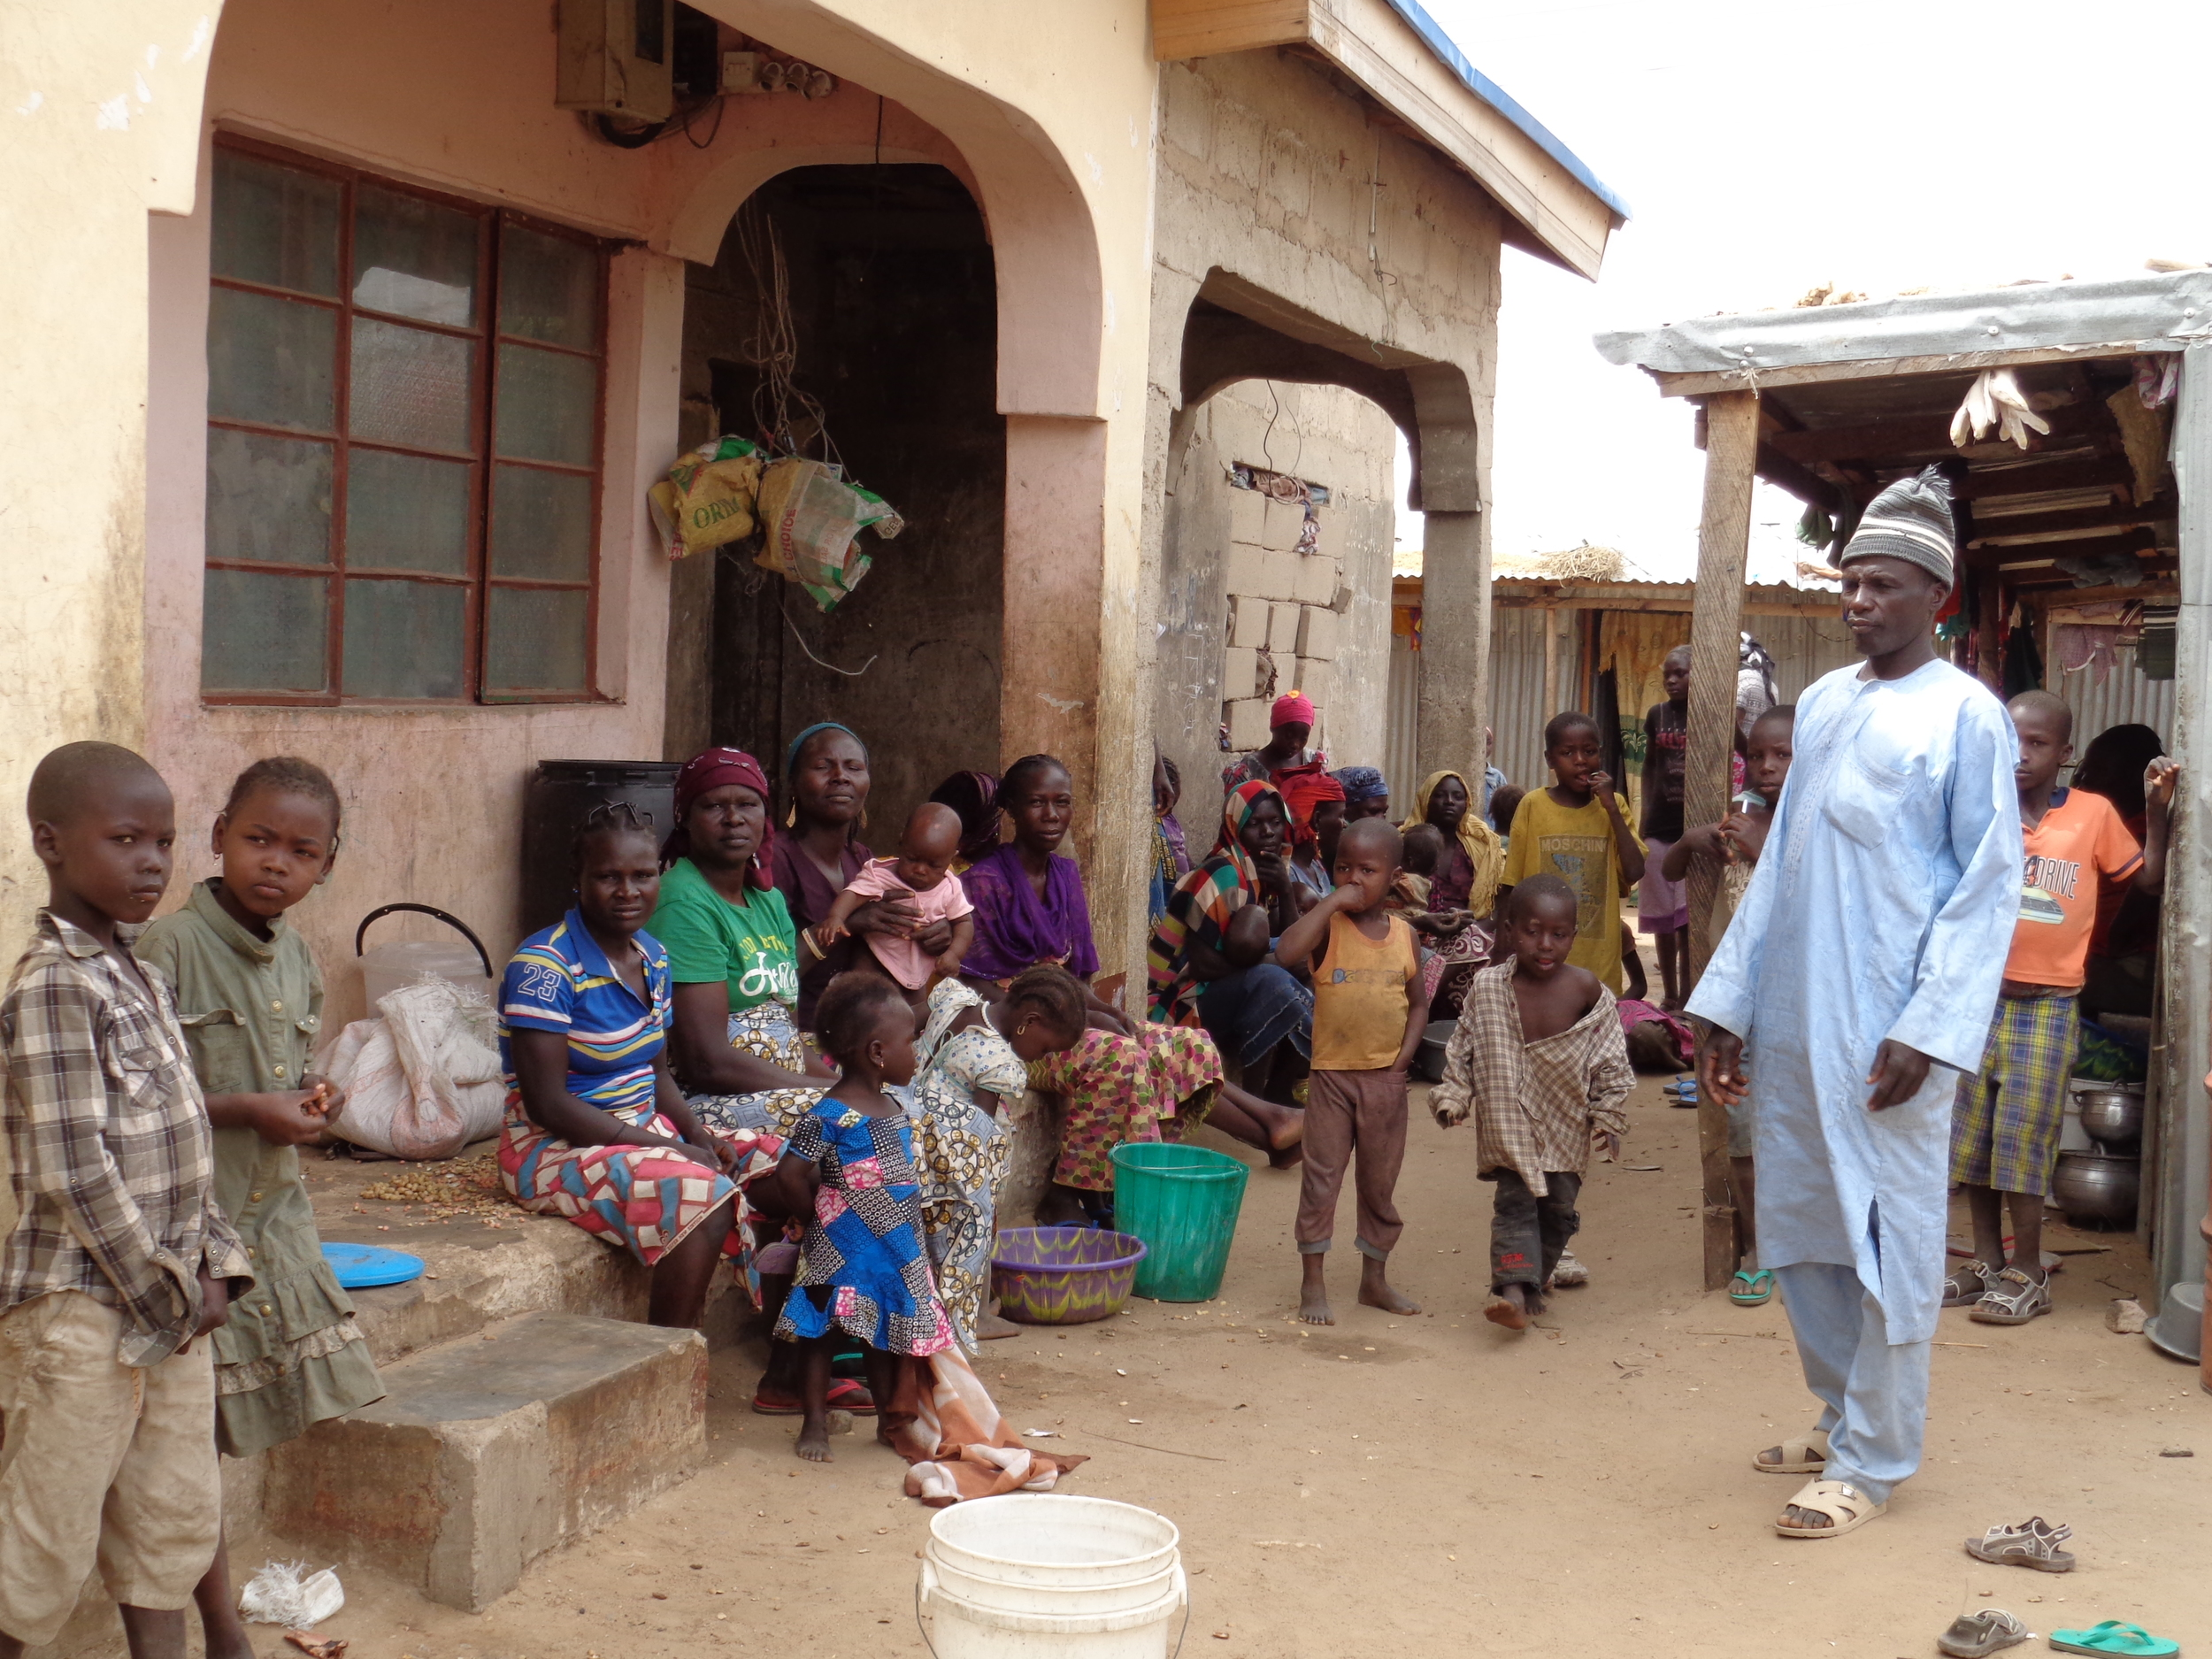 Over ninety percent of those displaced by Boko Haram are living outside of the state-run camps. The majority are women and children whose husbands and fathers were killed or captured in attacks by Boko Haram.